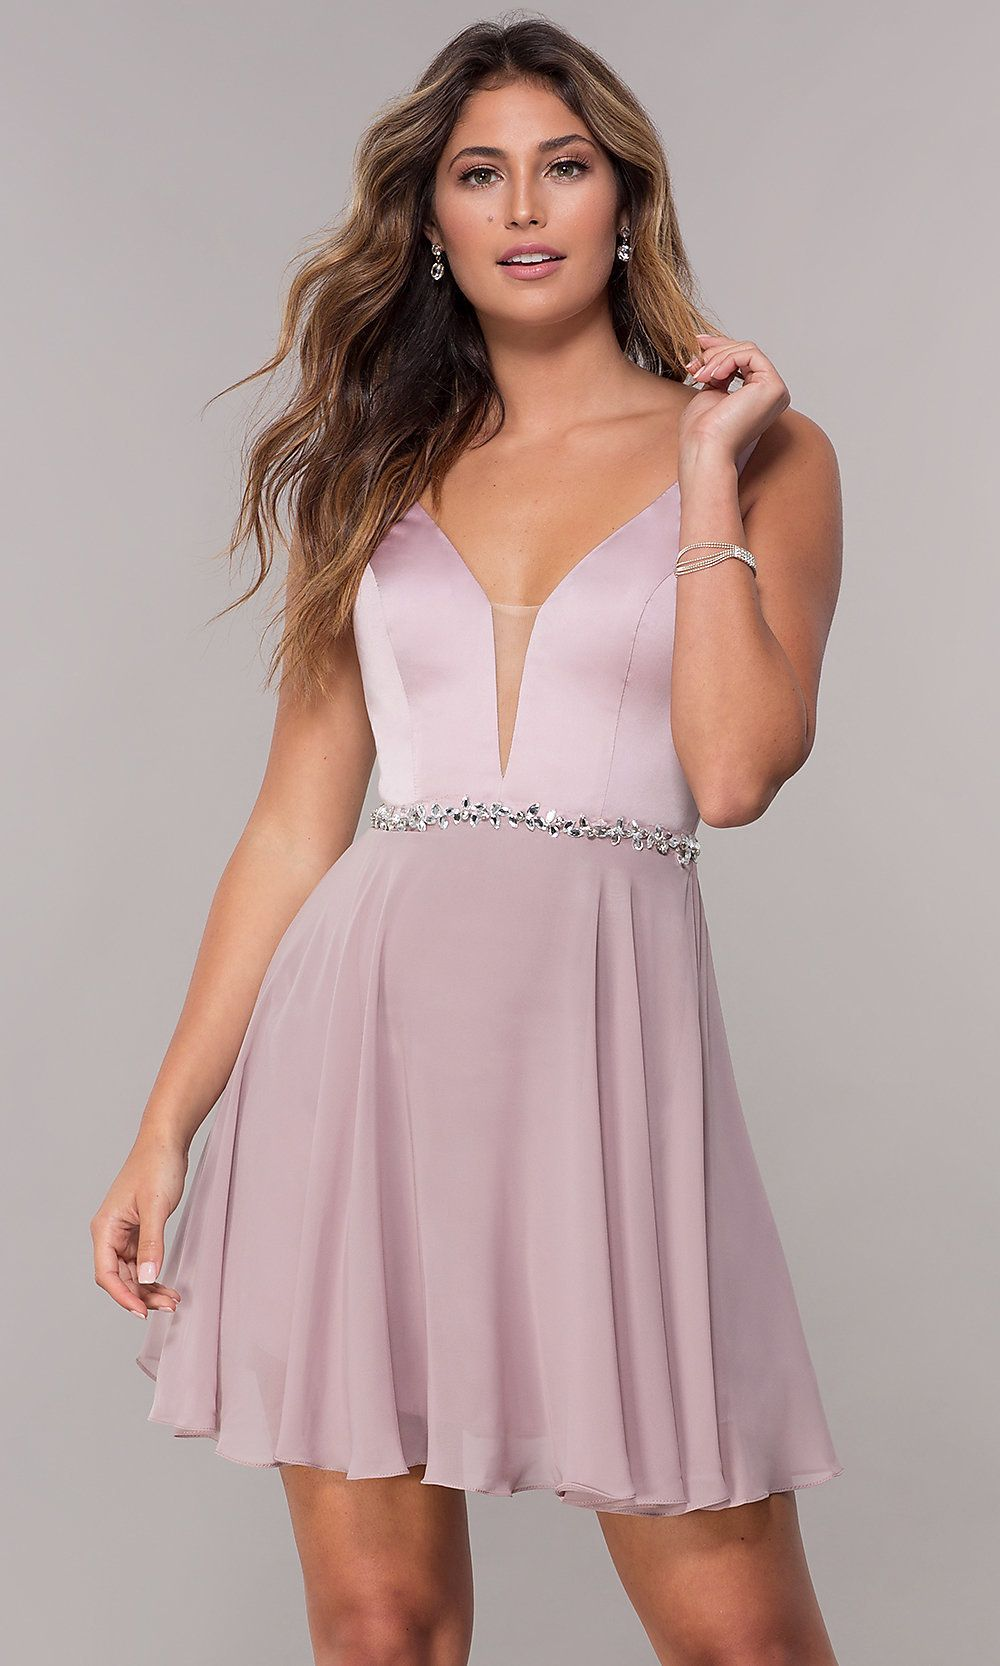 2a21585a5e06 Chiffon Short V-Neck Homecoming Dress in 2019 | Sexy | Homecoming ...